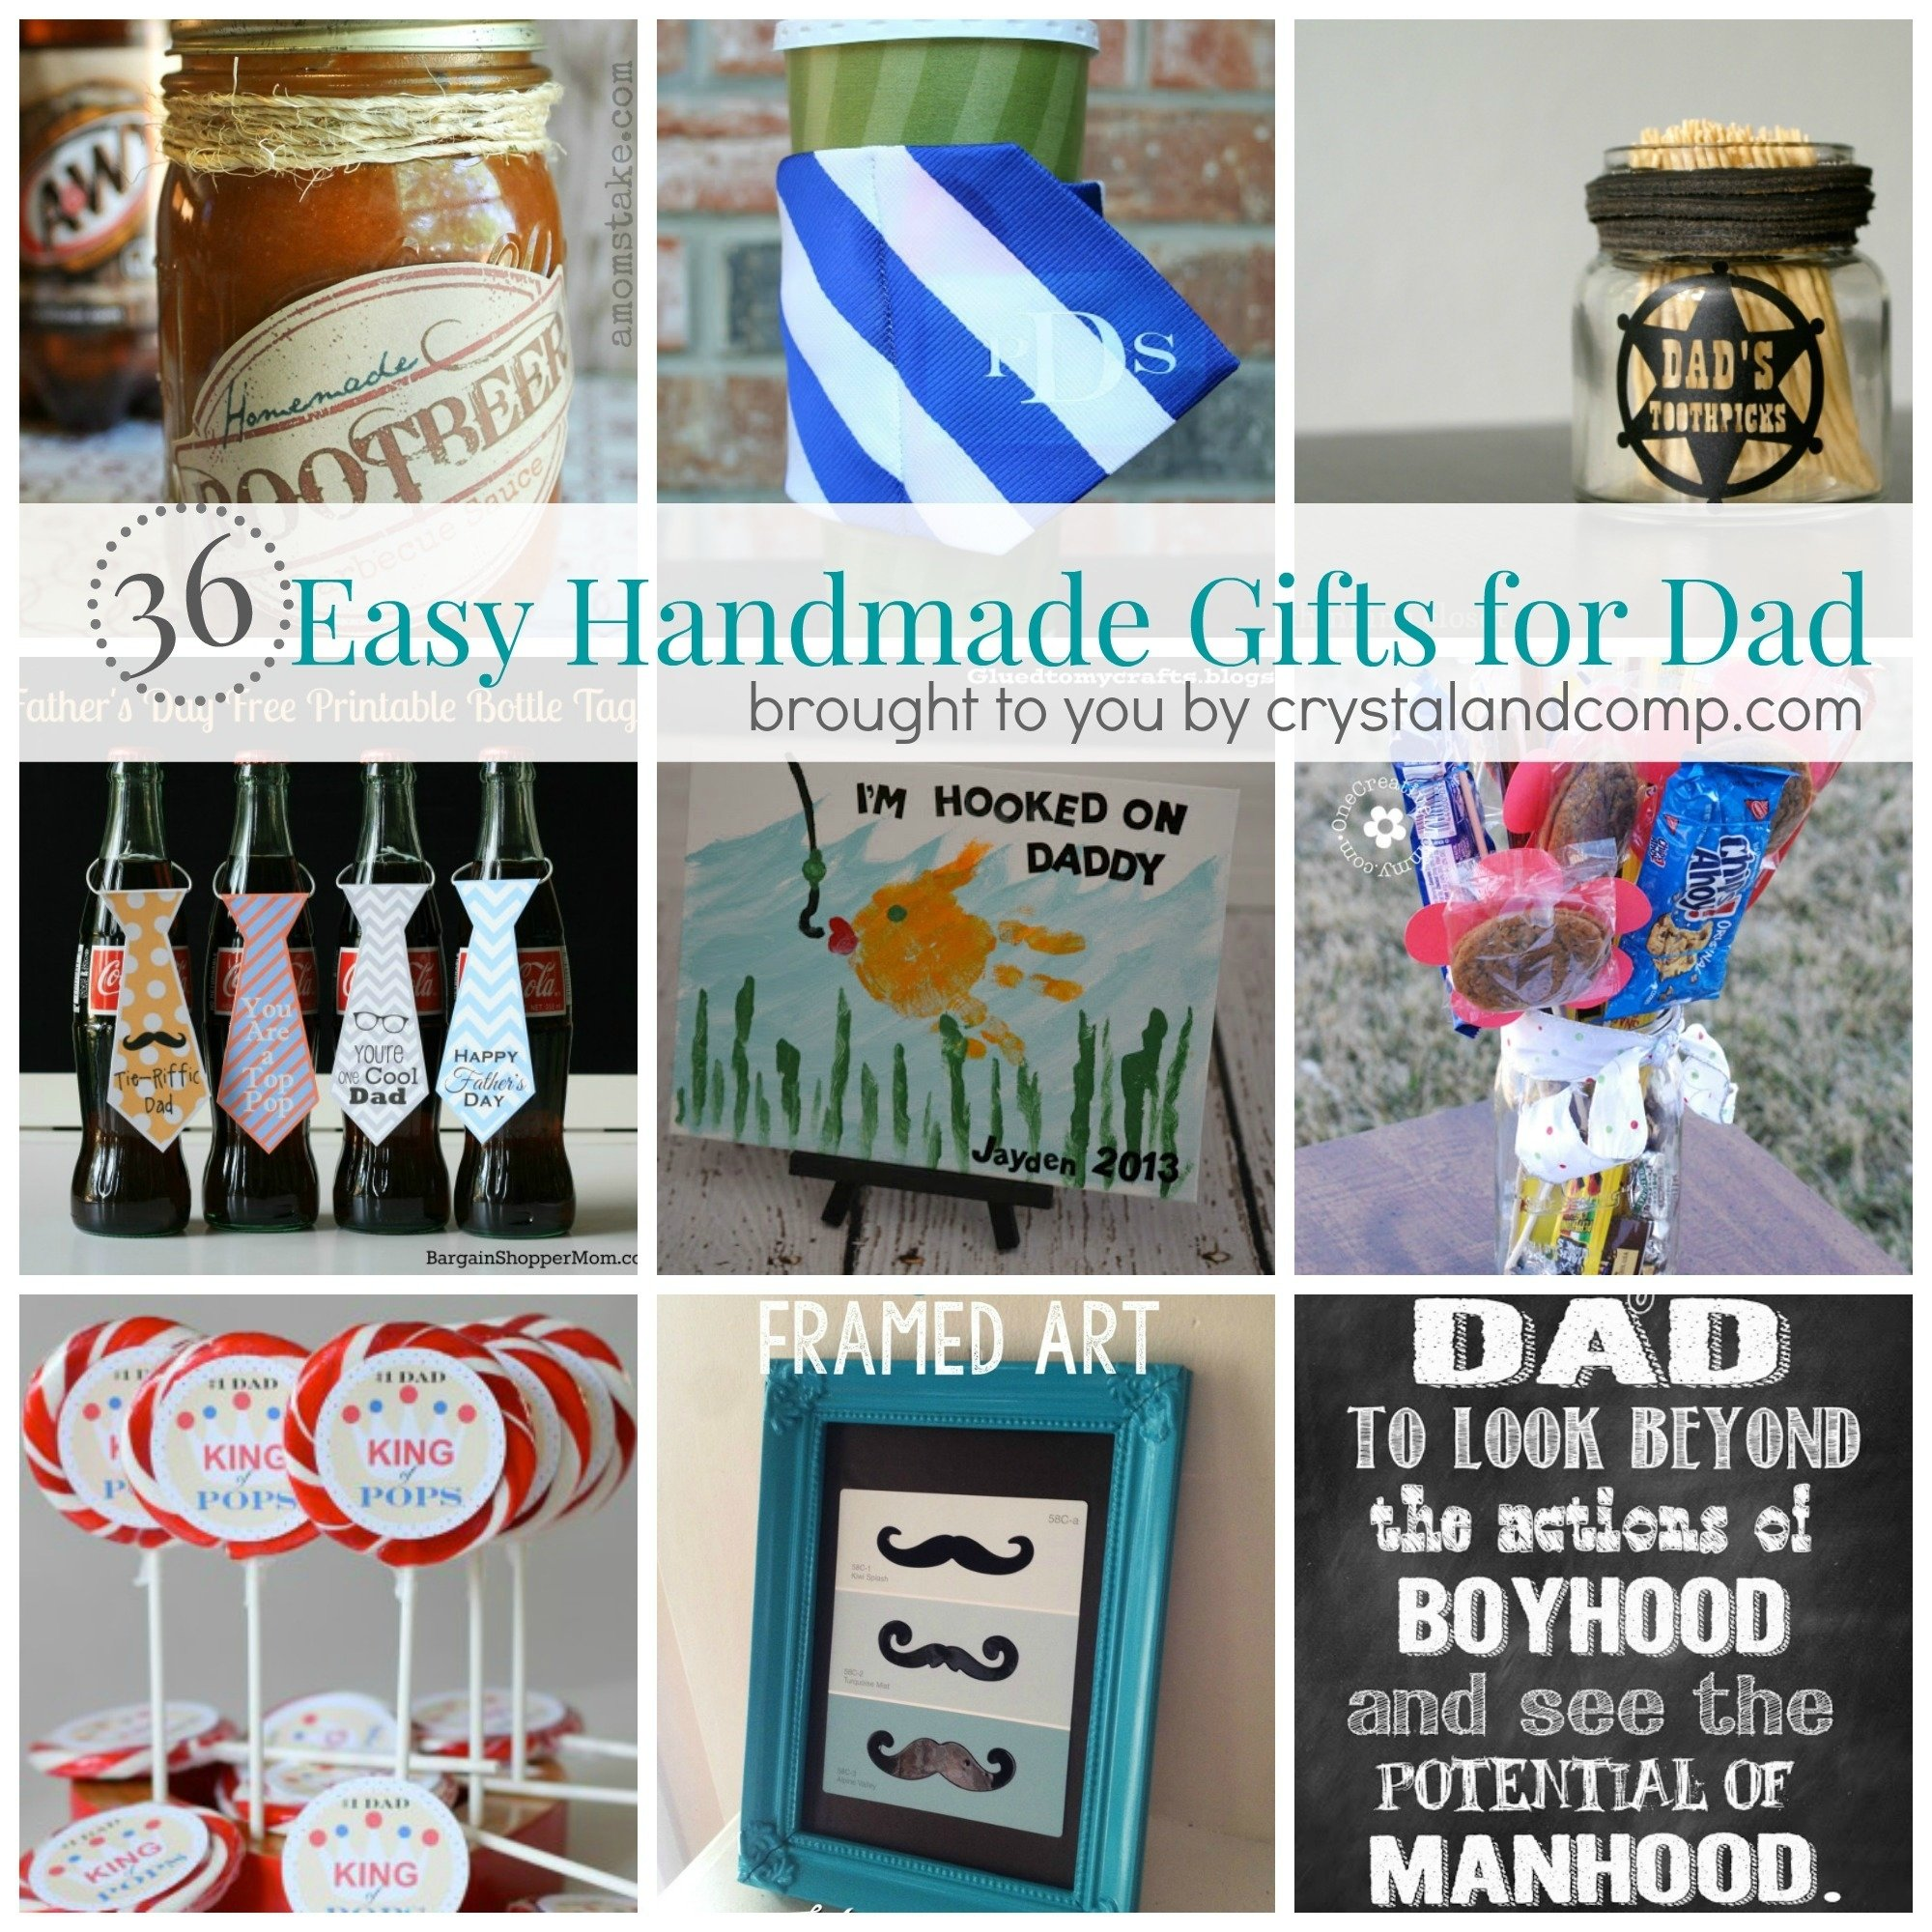 10 Trendy Cheap Gift Ideas For Dad 36 easy handmade gift ideas for dad easy homemade gifts dads and 2021